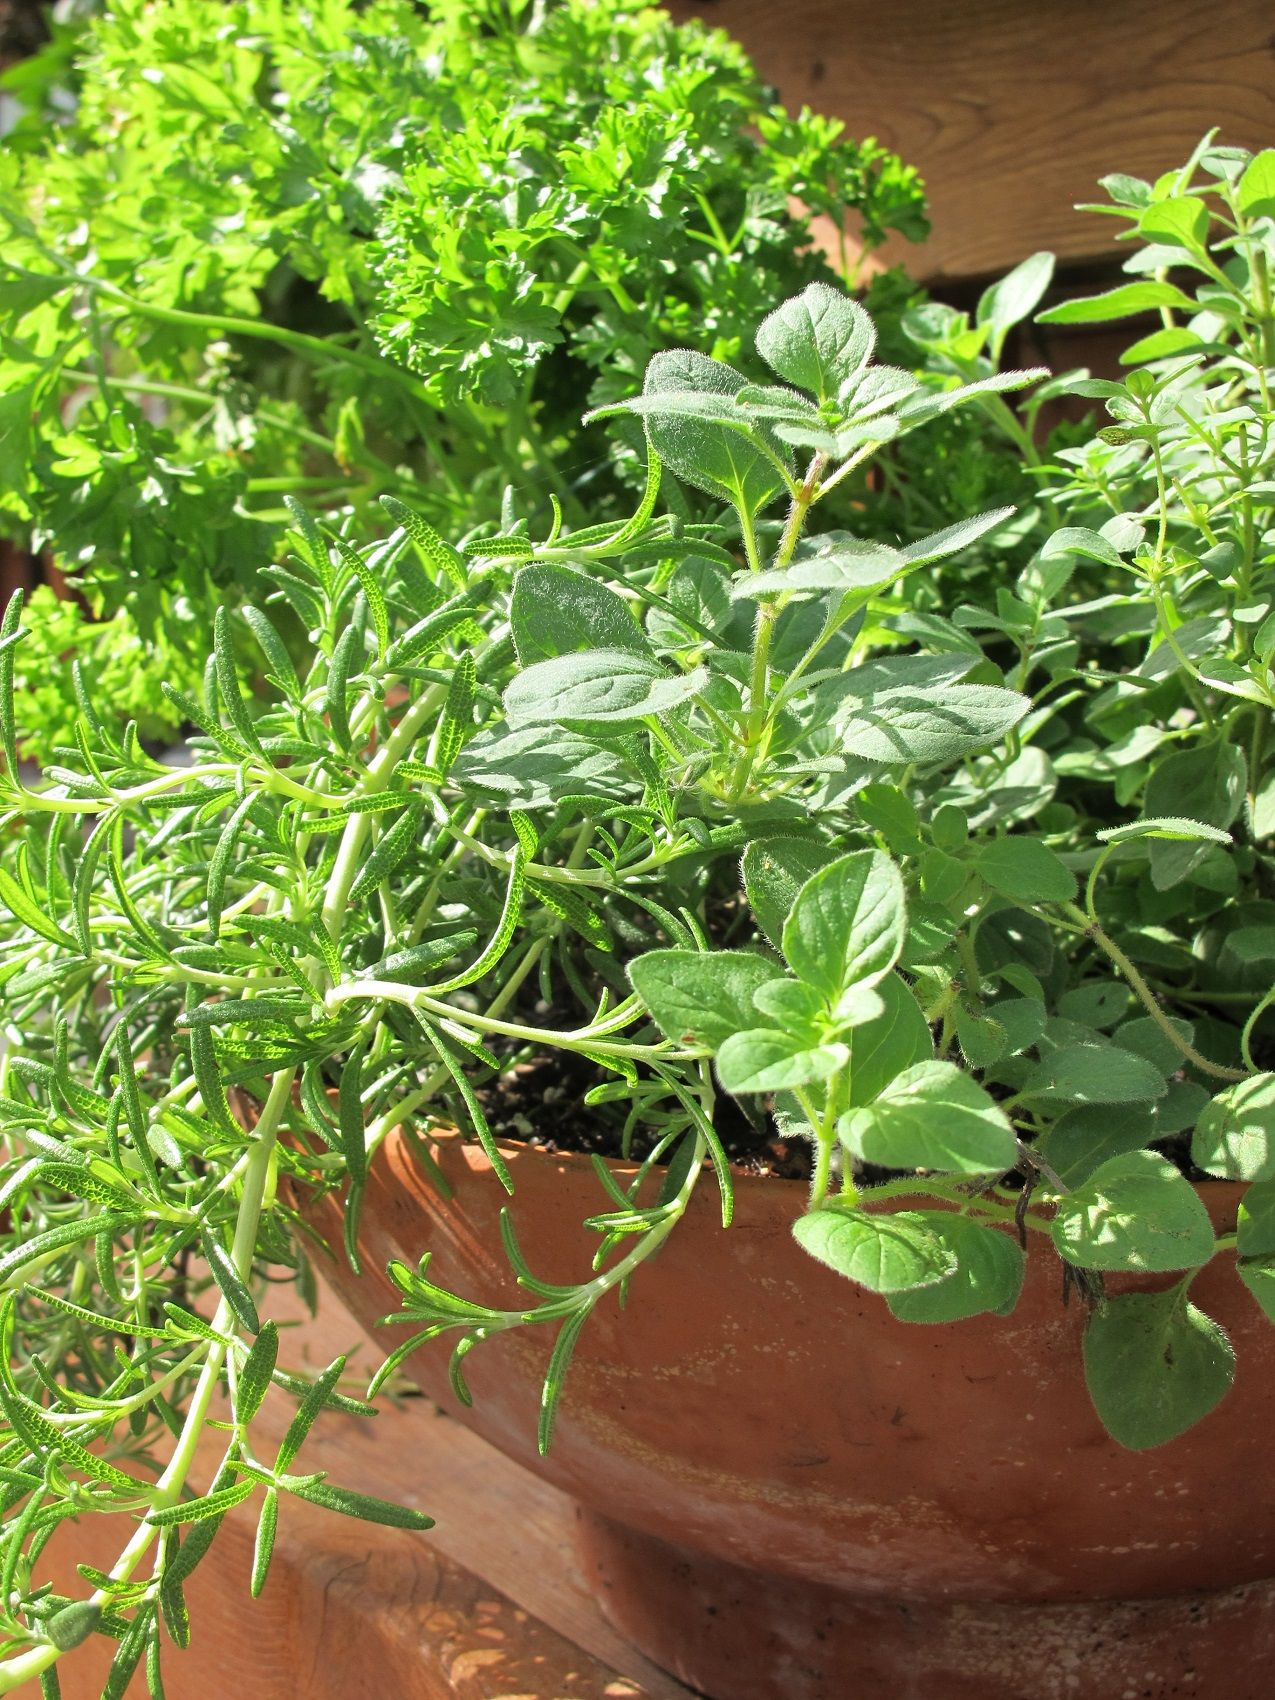 Fresh herbs feel indulgent, but keeping them in a kitchen